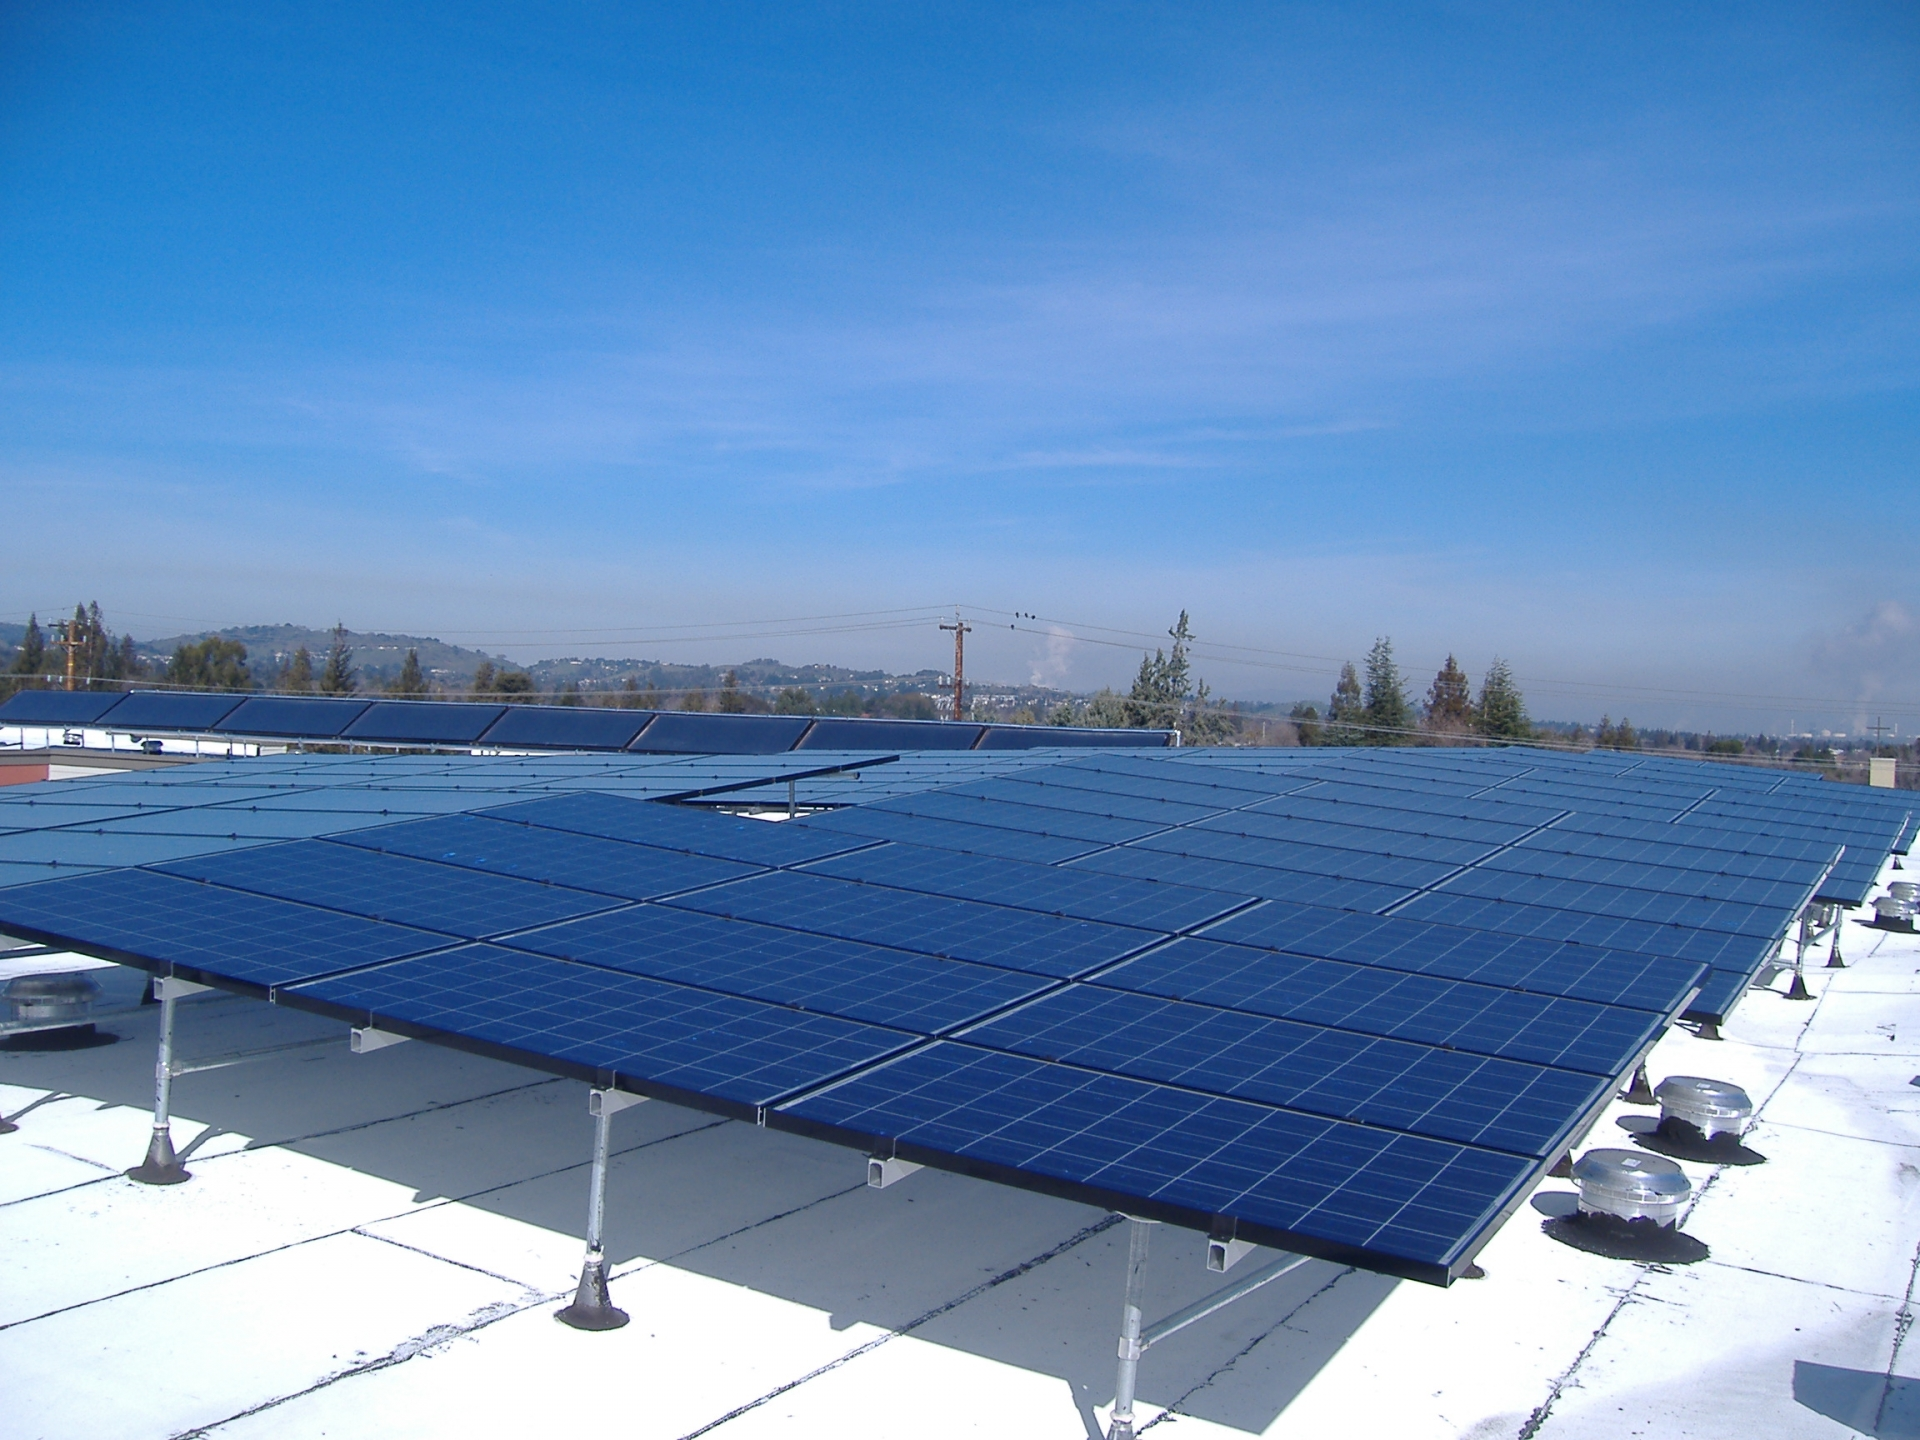 Villa Vasconcellos | Photovoltaic | Walnut Creek